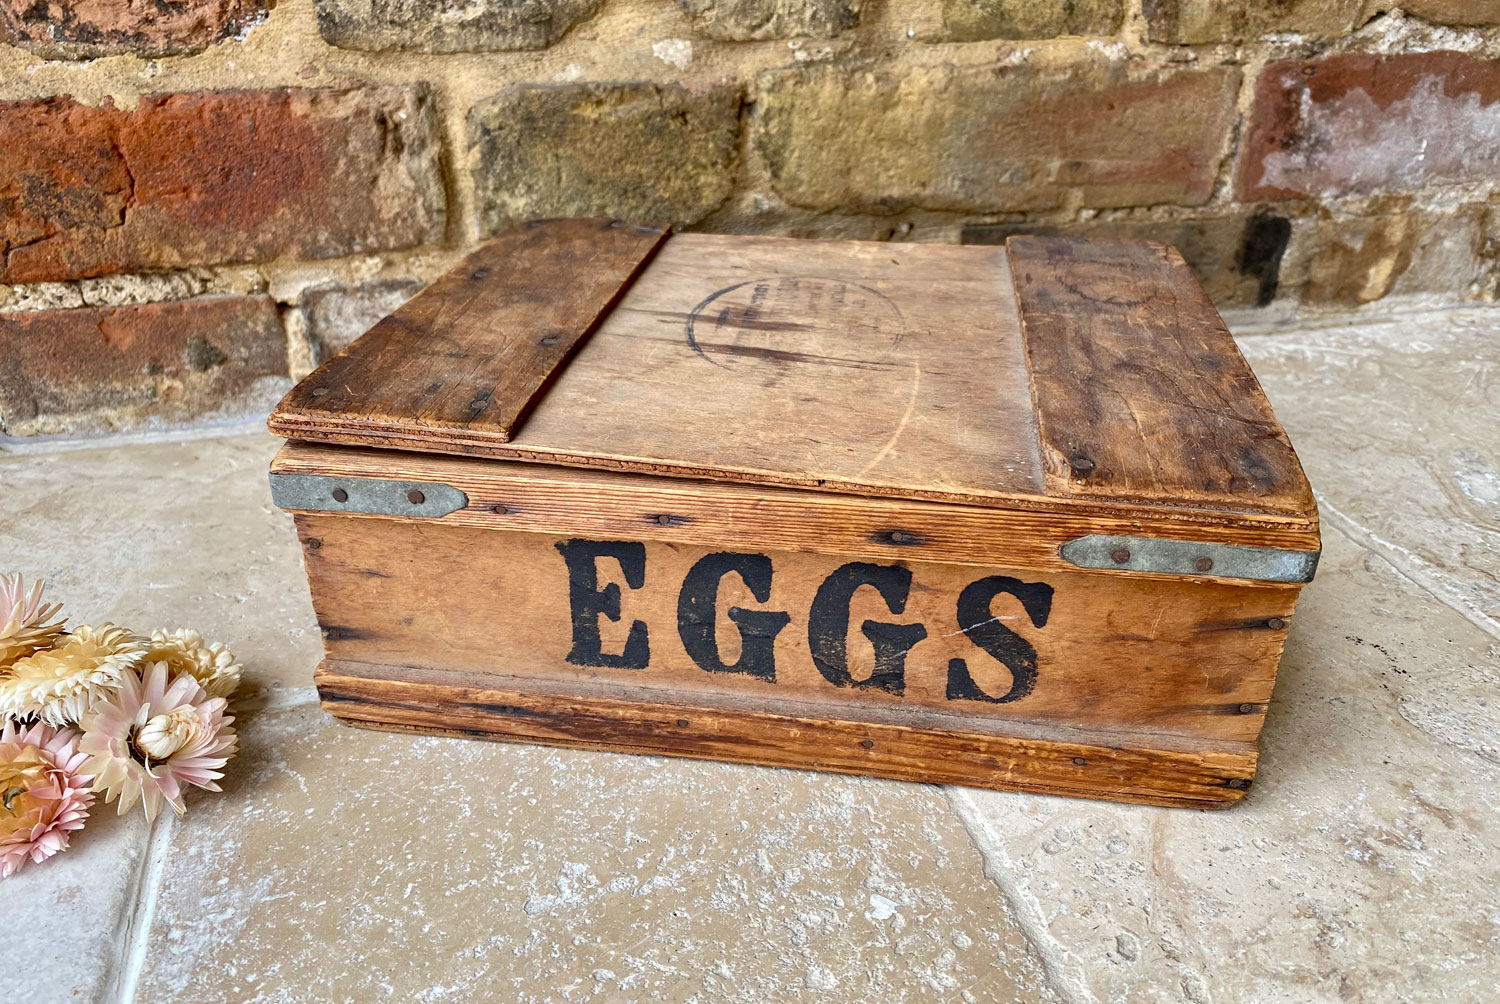 antique 1930s wooden travelling eggs box hammock post postal dairy outfit company